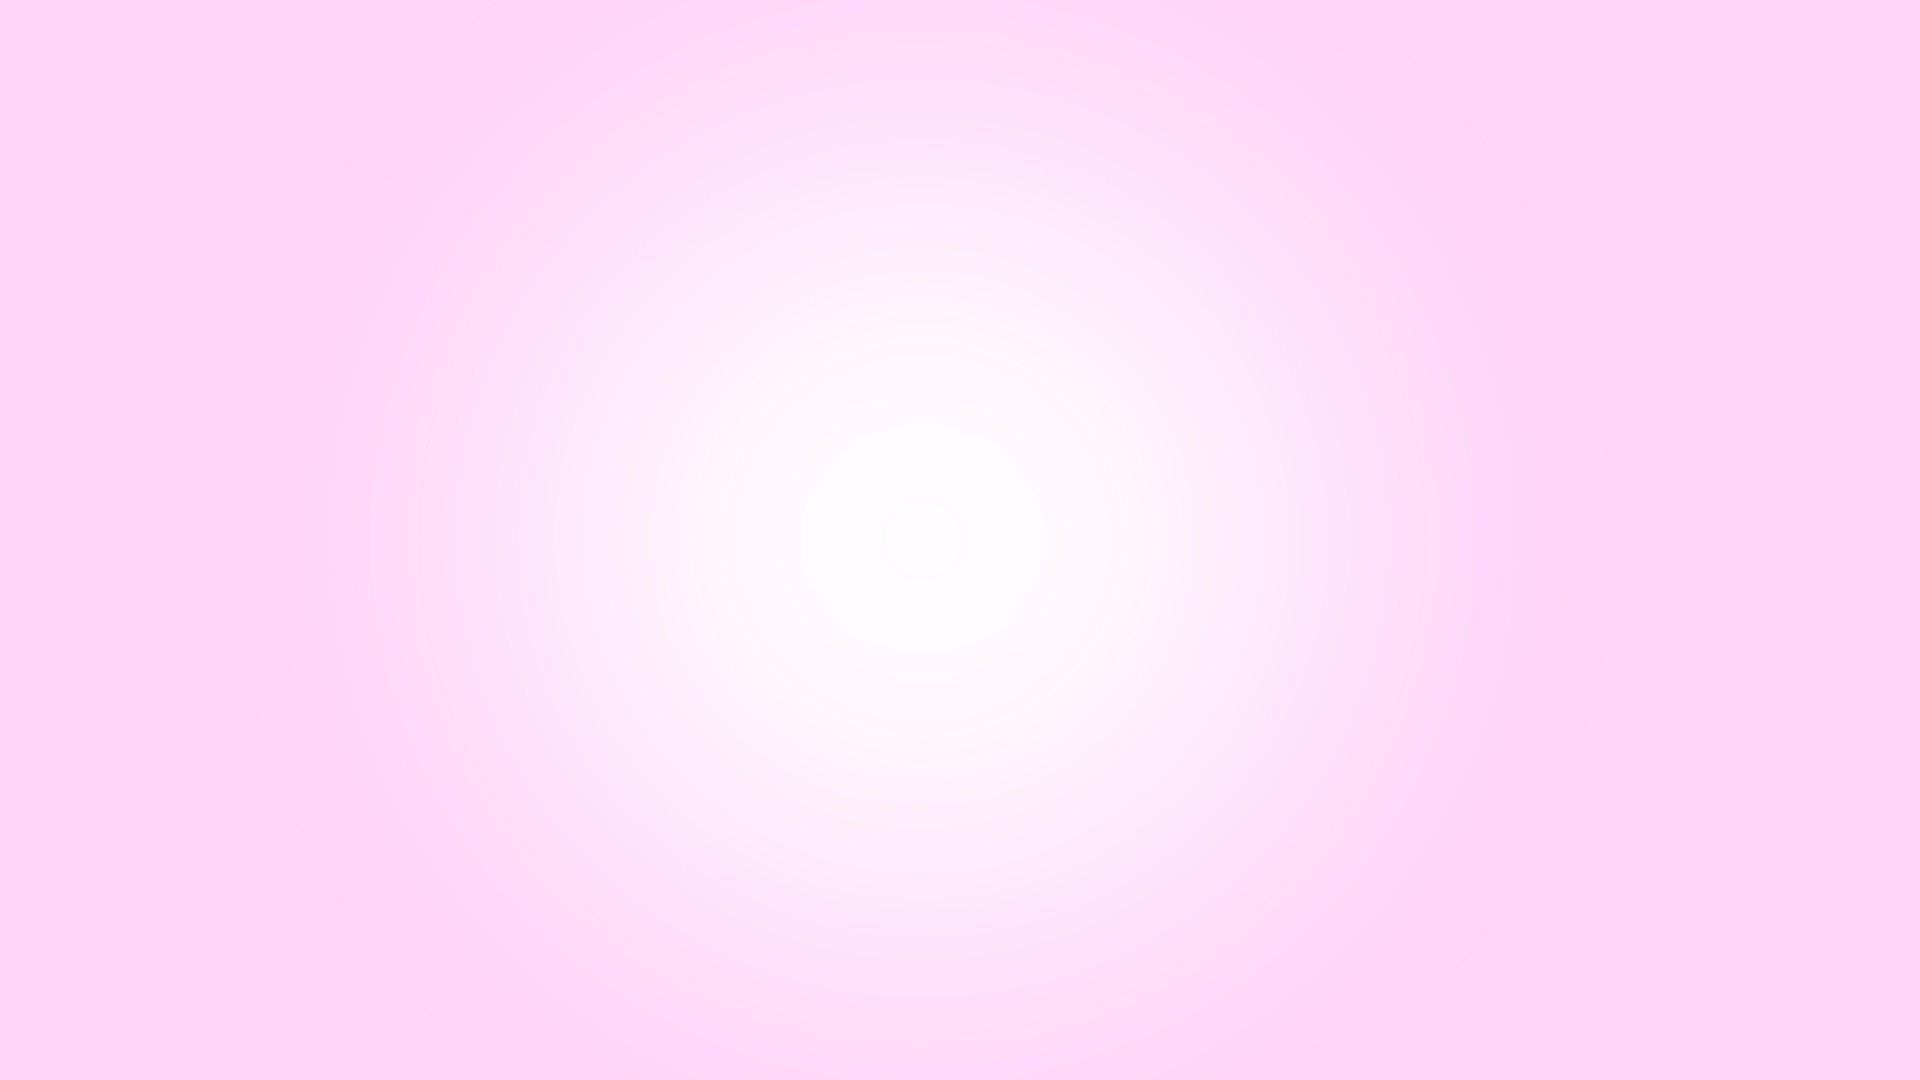 High Resolution Creative Pink And White Pictures, px, Dallas  Weigel